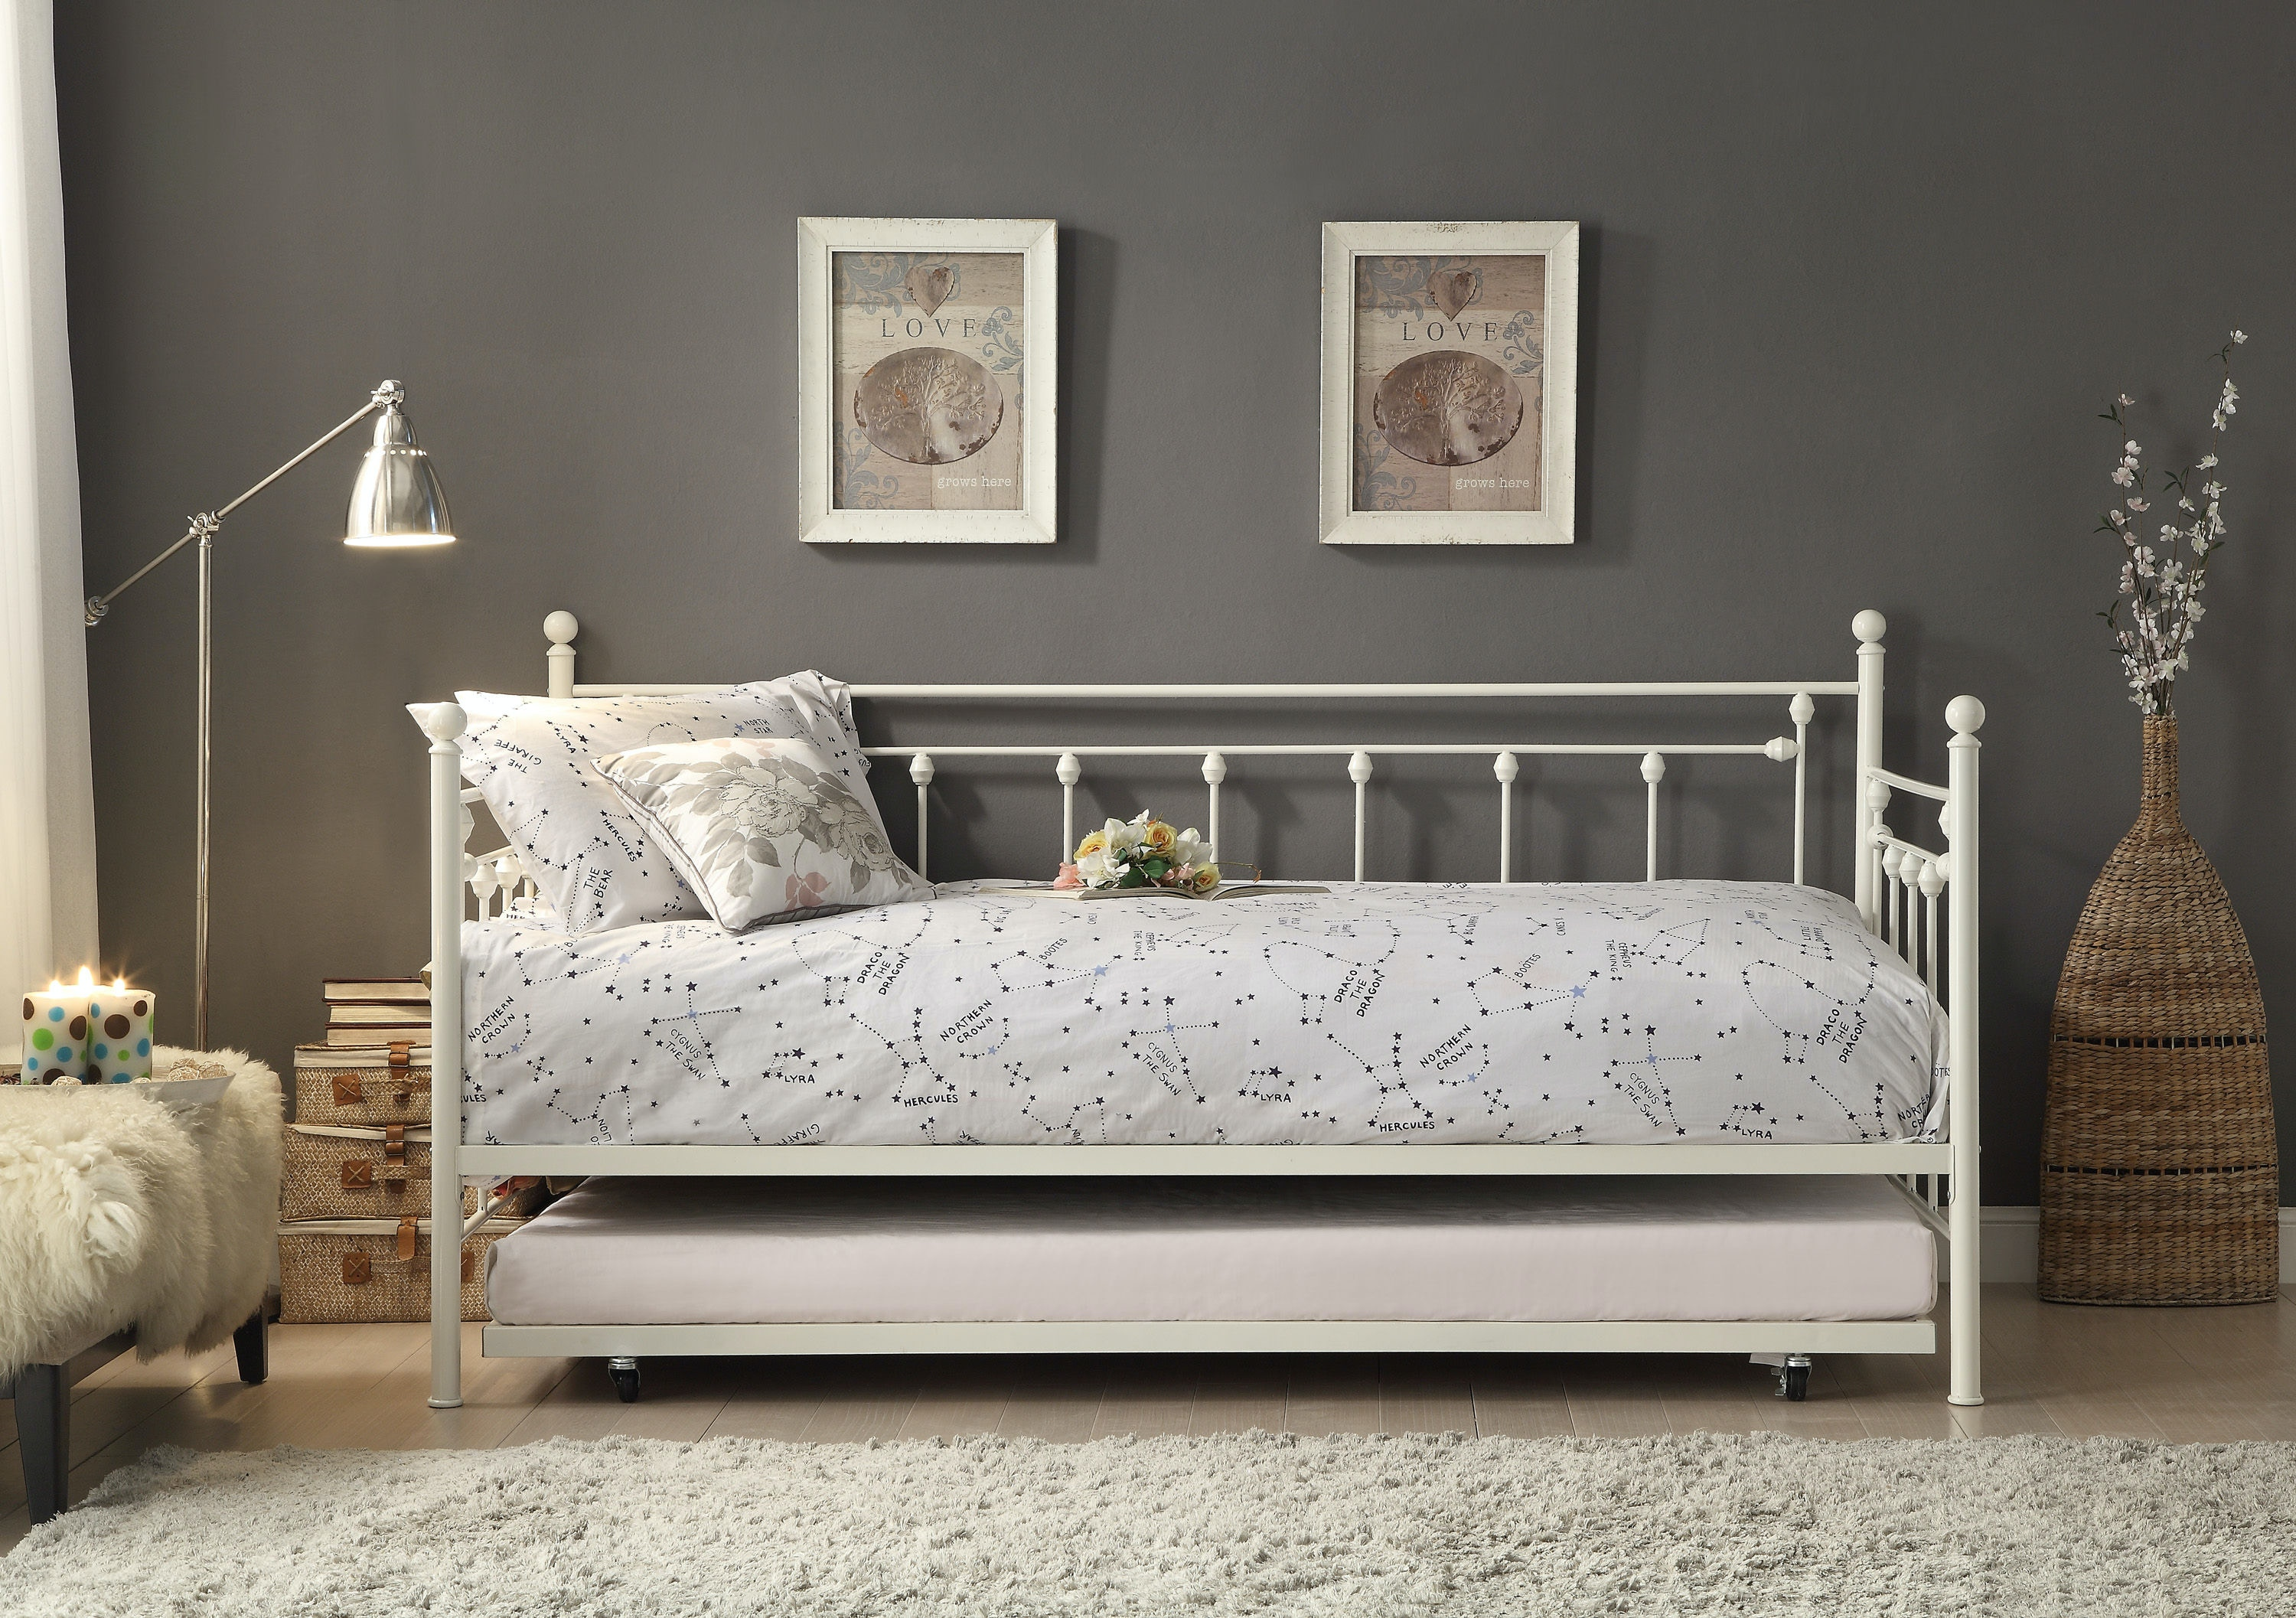 Homelegance Bedroom Daybed With Trundle 4965W NT   Furniture Plus Inc.    Mesa, AZ